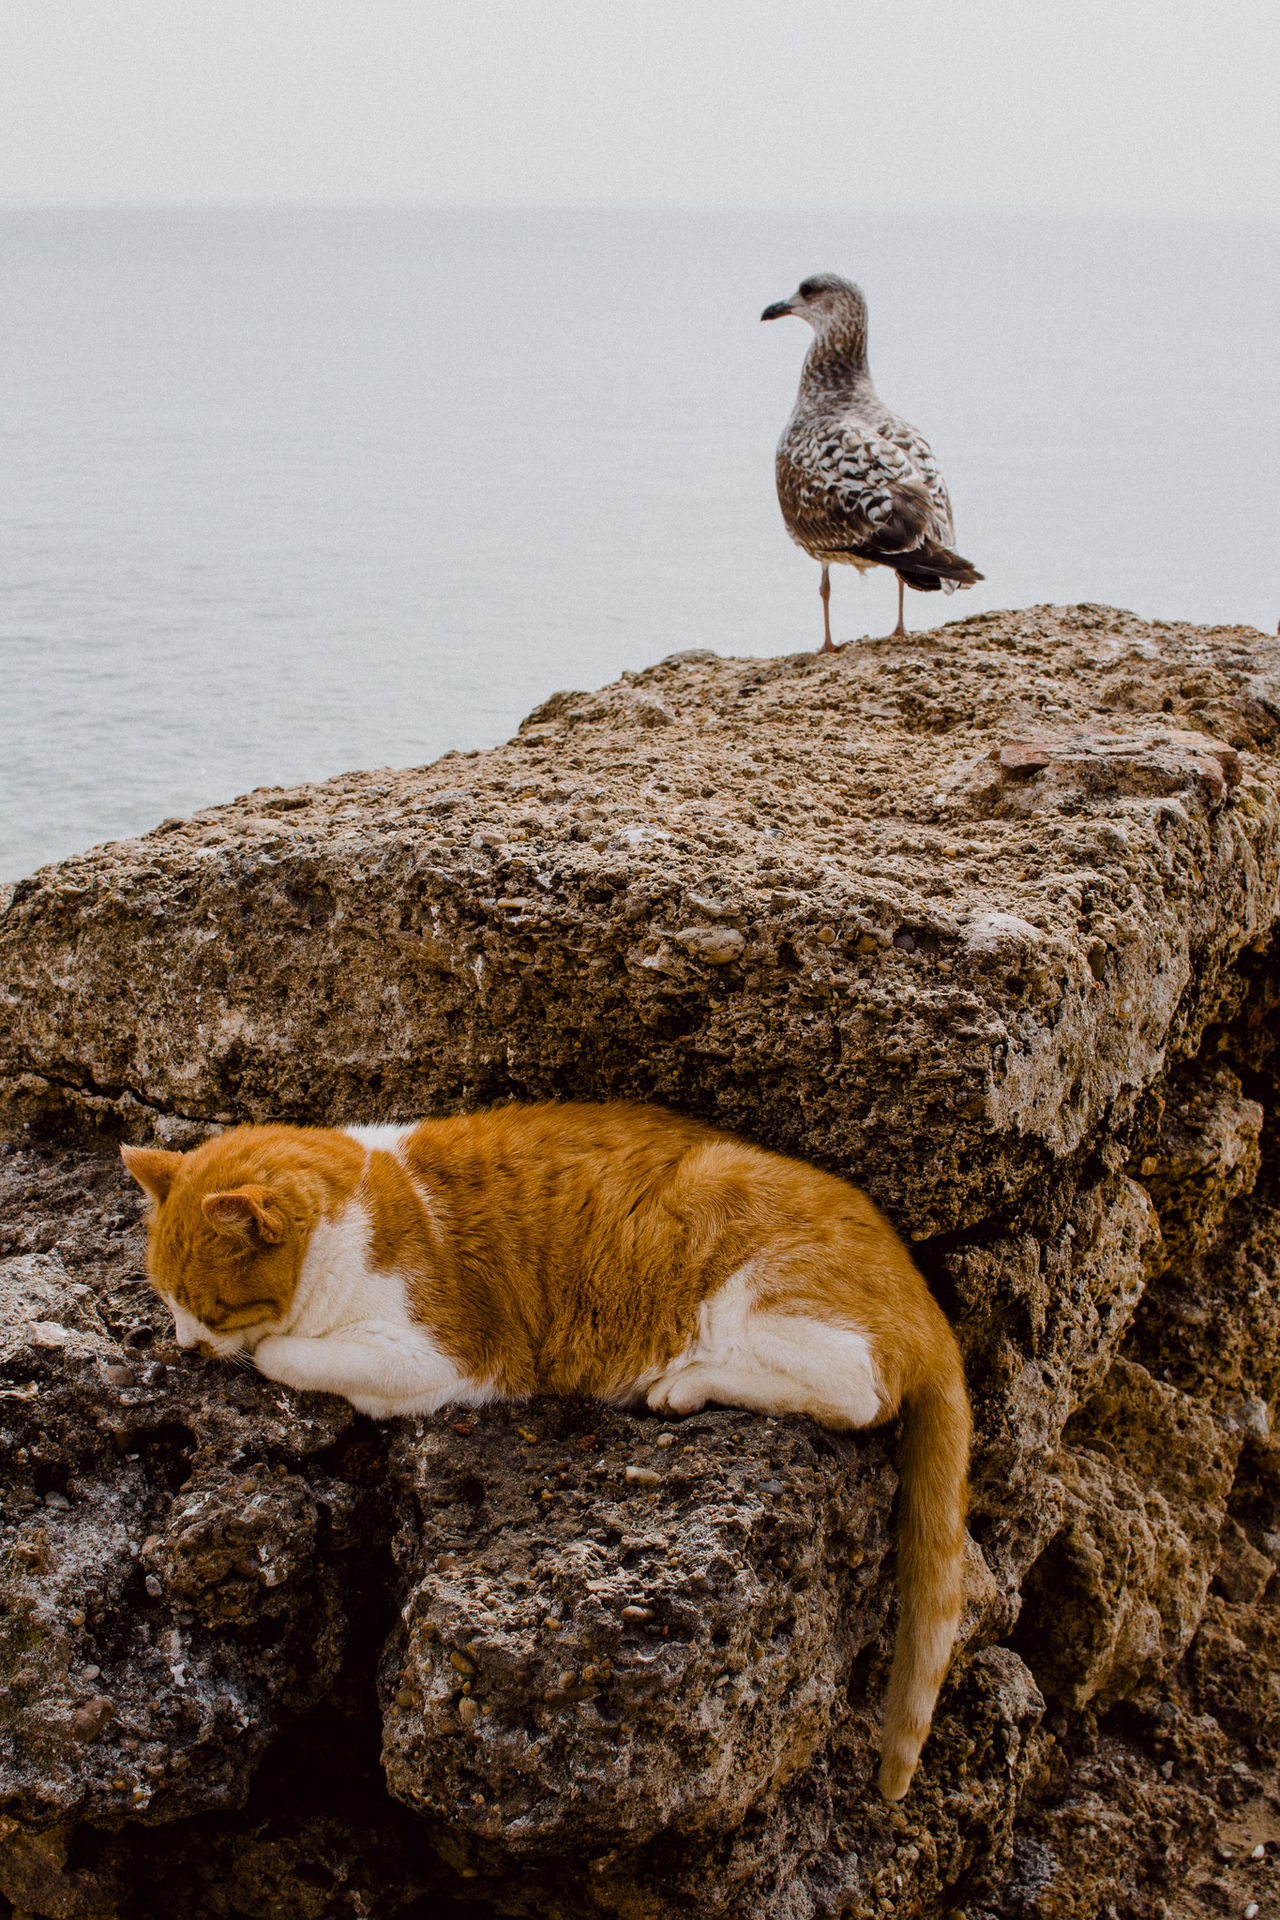 Cat and seagull Animal Themes Animal Wildlife Animals In The Wild Beauty In Nature Bird Day Mammal Nature No People One Animal Outdoors Perching Sea Water